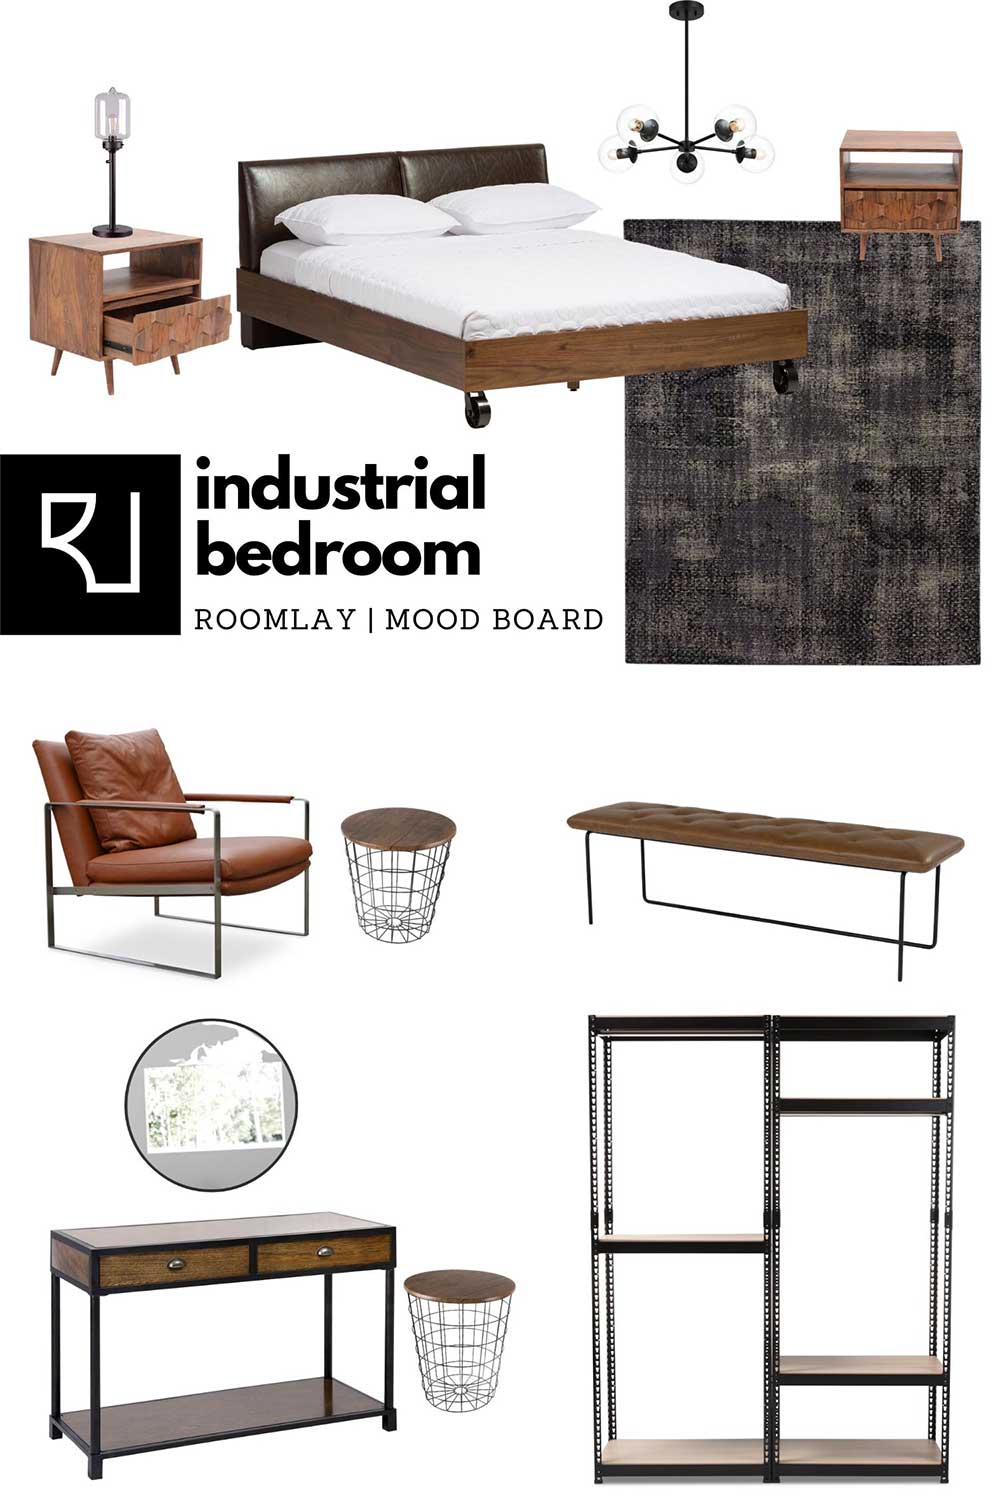 industrial bedroom furniture and decor ideas